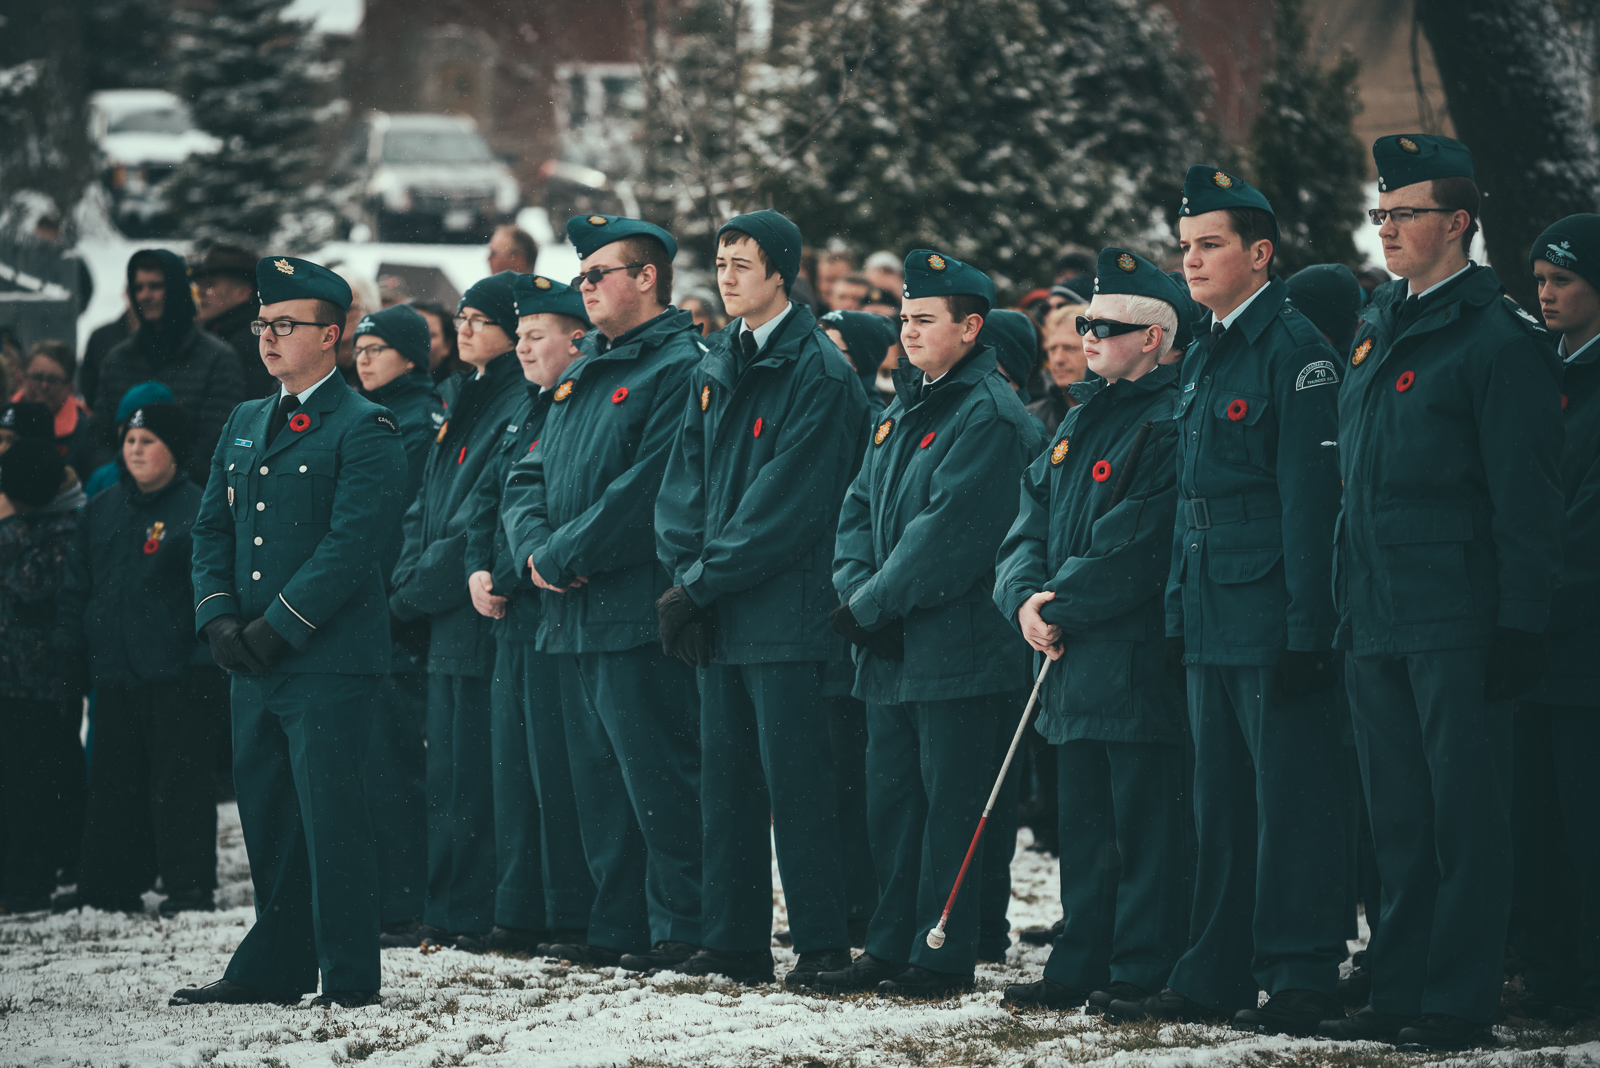 remembrance-day-2018-blog-32.jpg